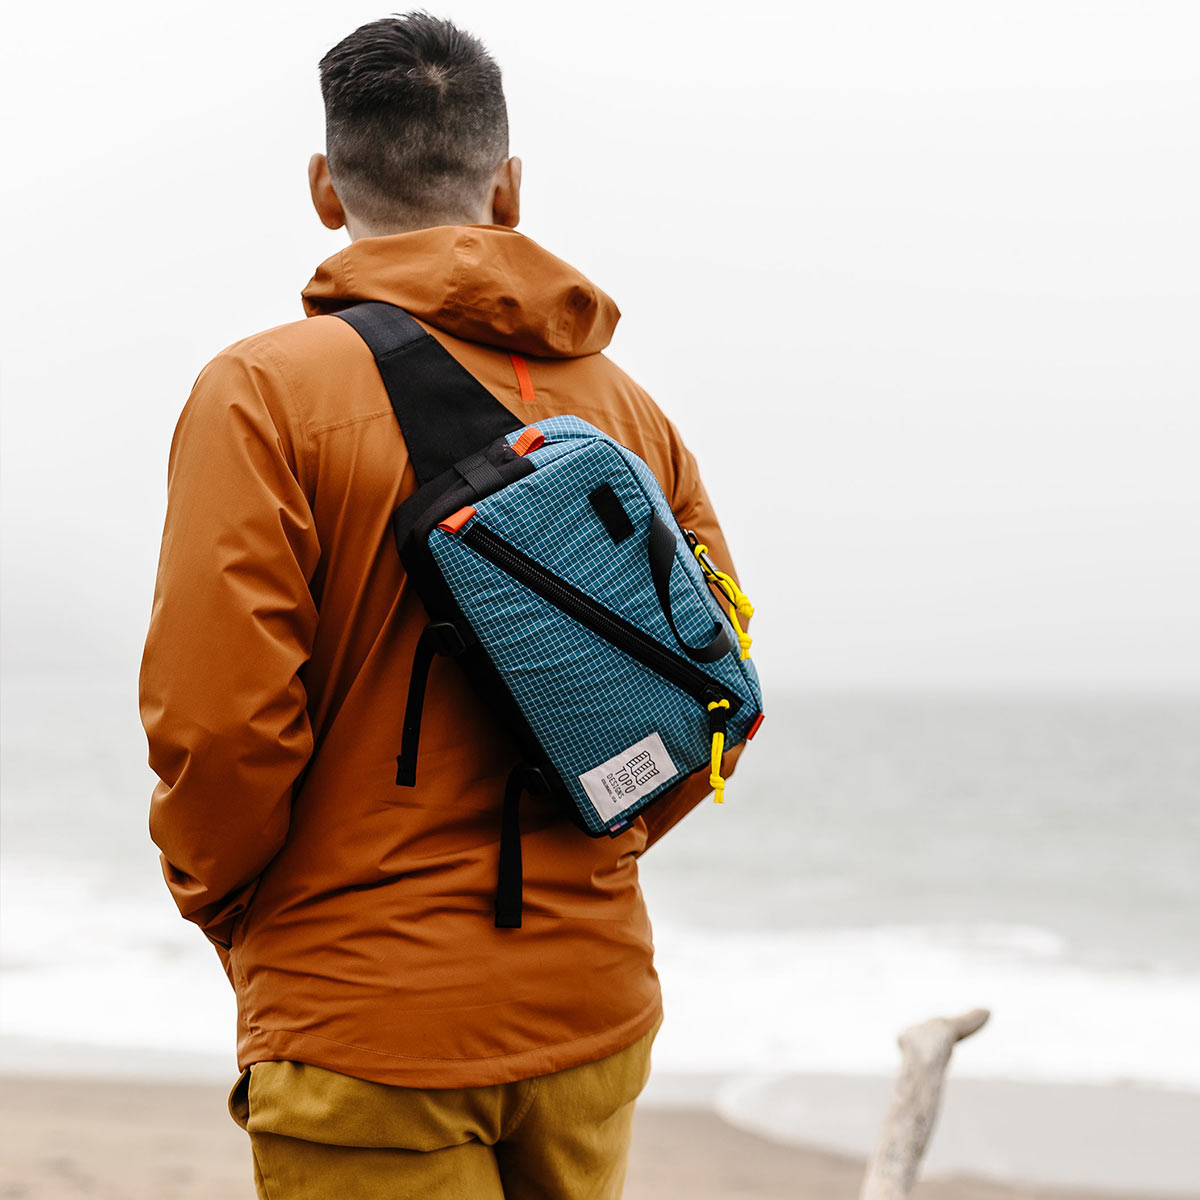 Topo Designs Quick Pack Blue Ripstop, a well-built, secure bag for travel